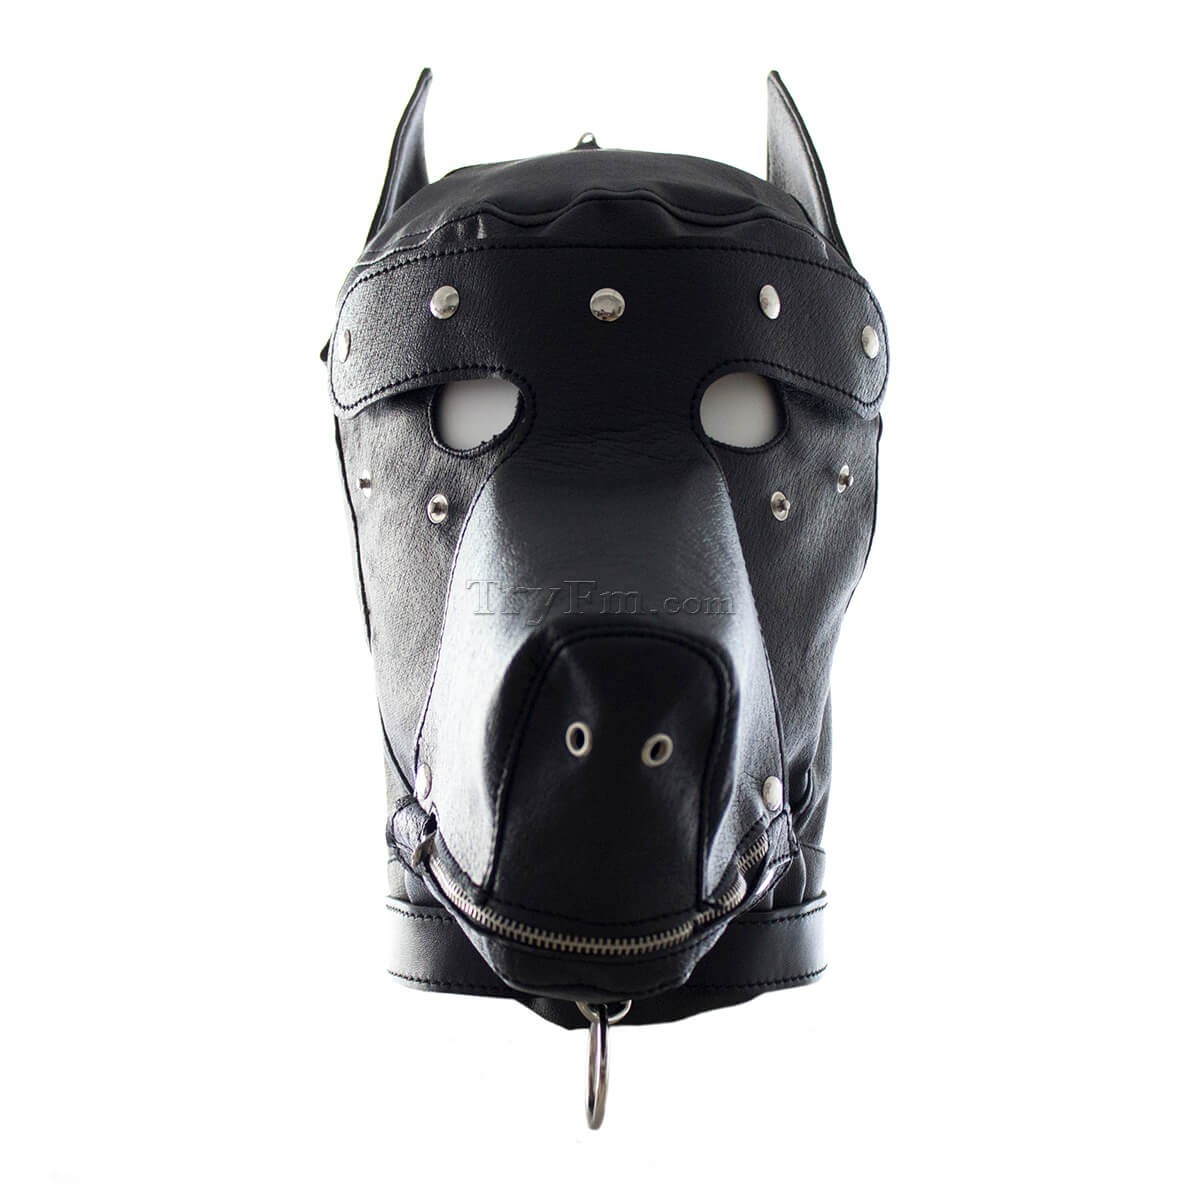 15-BDSM-Hood-with-Removable-Muzzle5.jpg